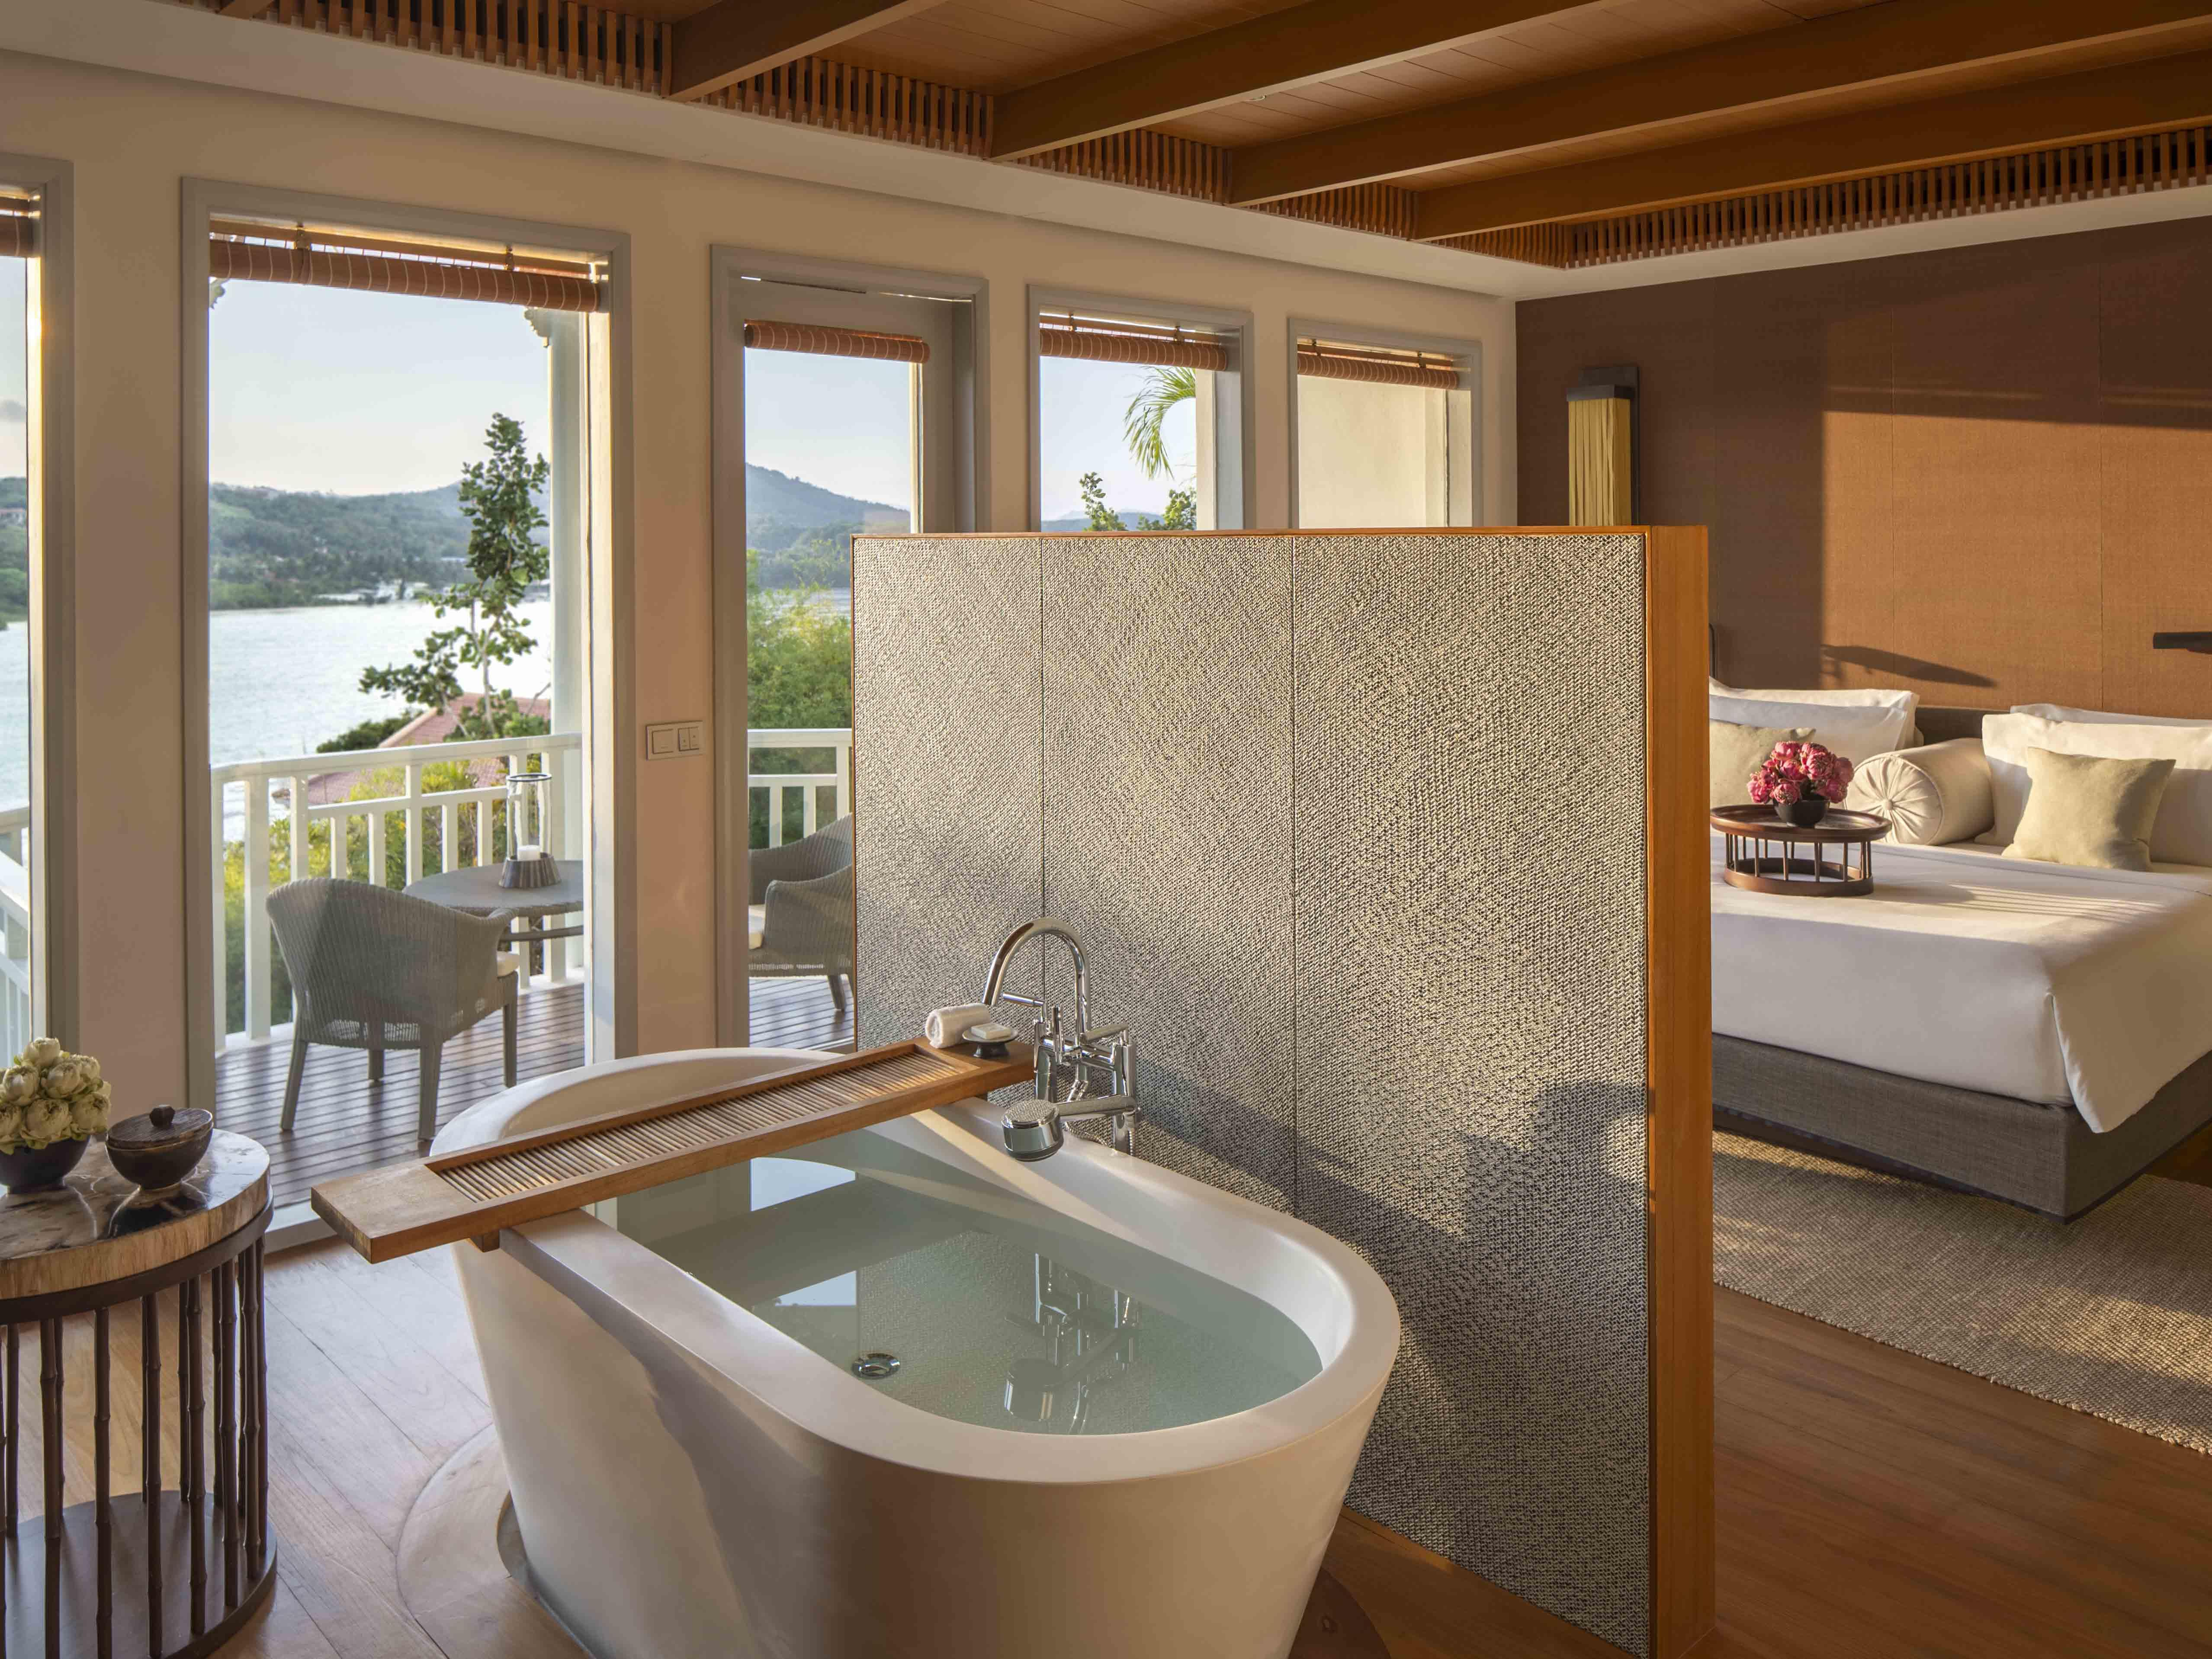 Amatara Wellness Resort Bay View Suite bath tub